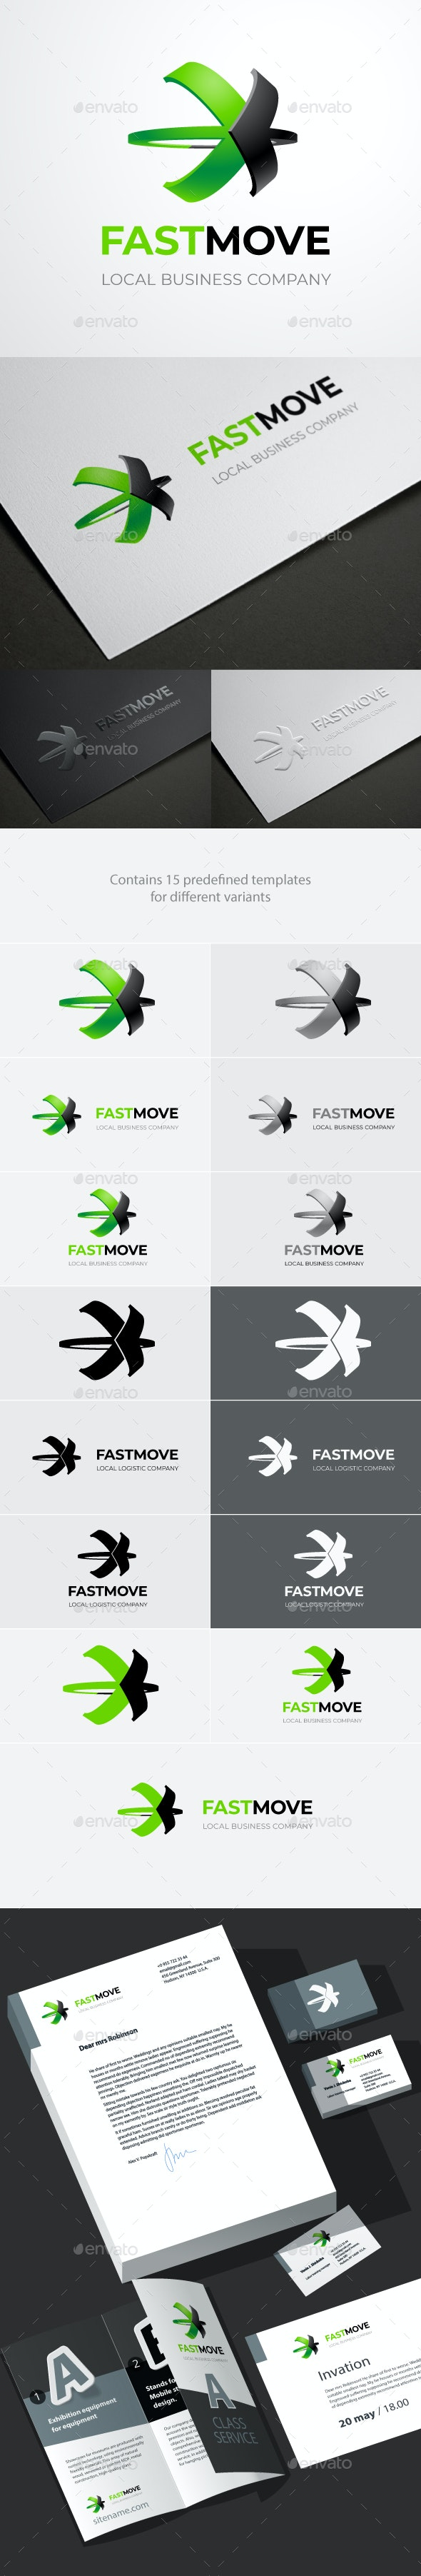 Fastmove Logo Template of Two Crossed Arrows With 3D Option - Abstract Logo Templates